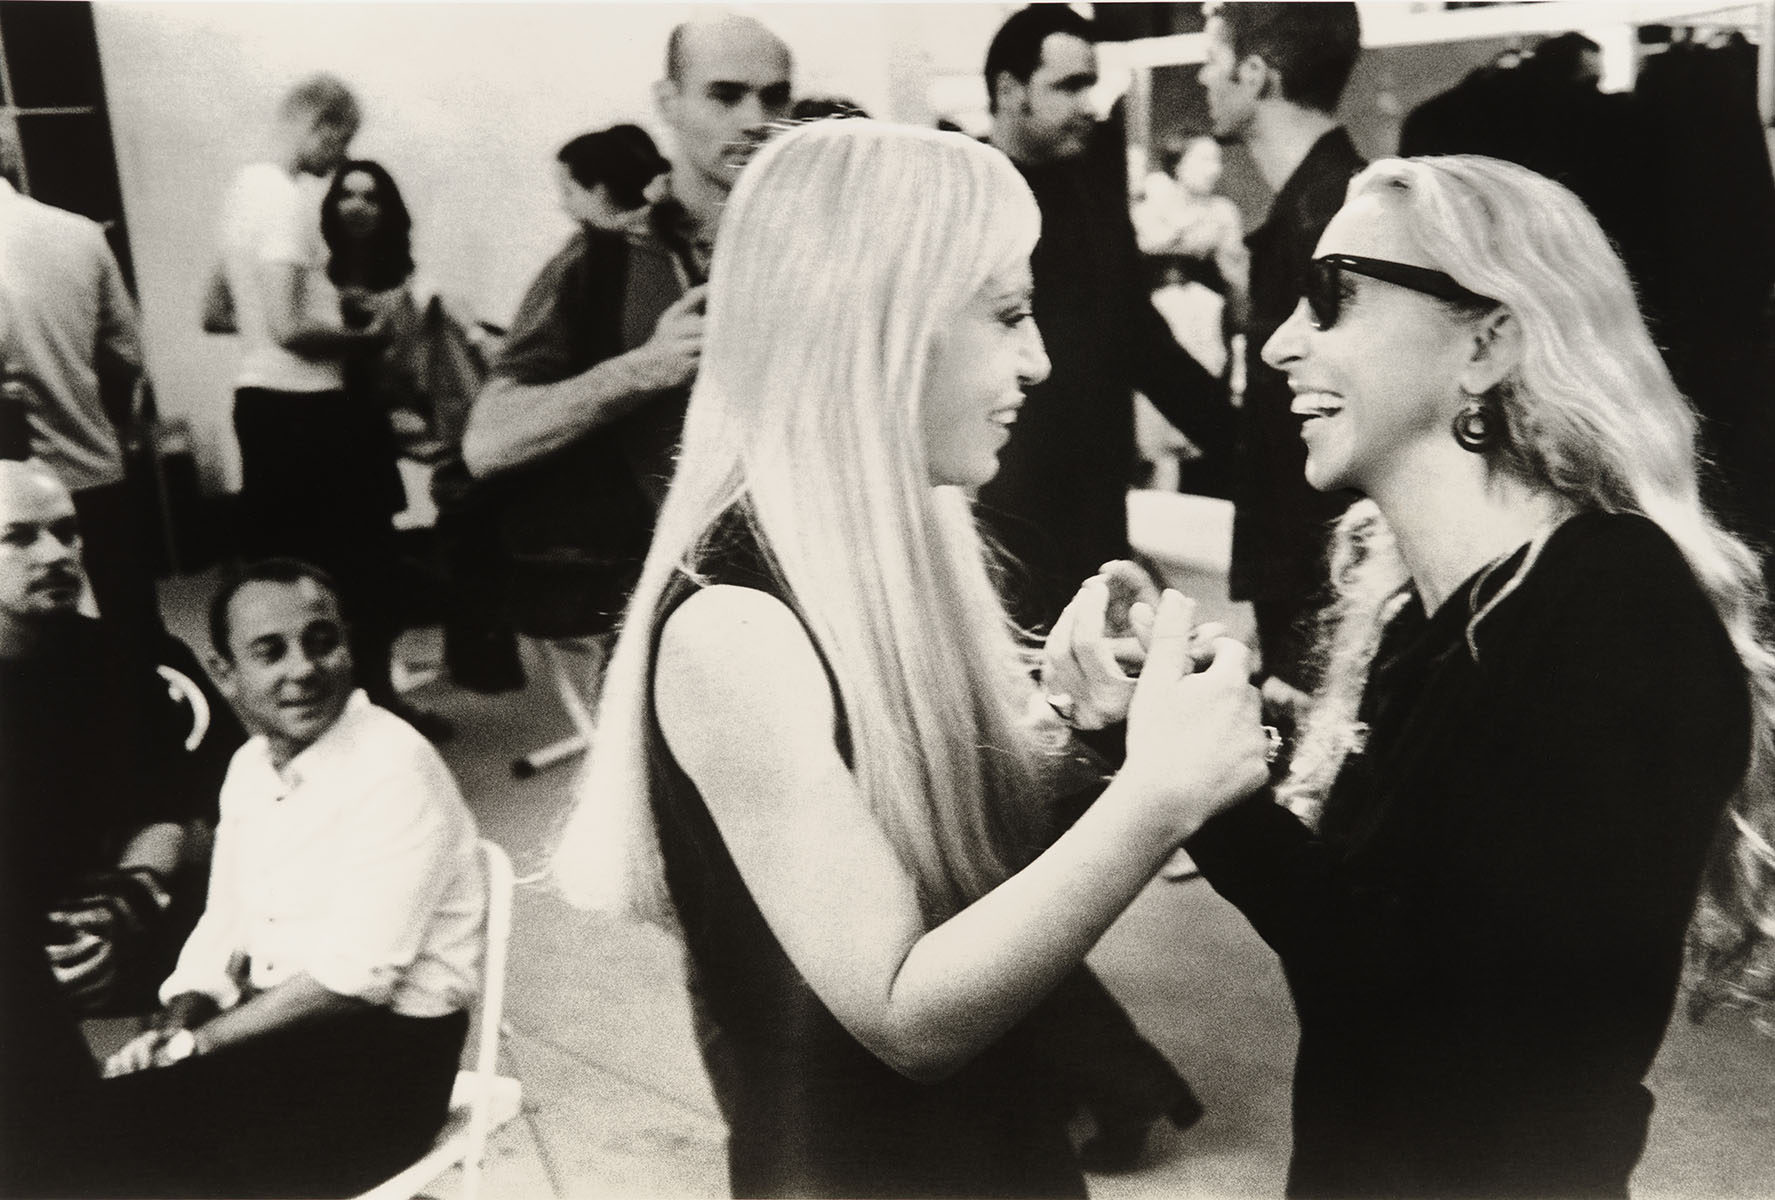 Backstage at Versace women's ready-to-wear Spring 1998 show, photo Sante D'Orazio.